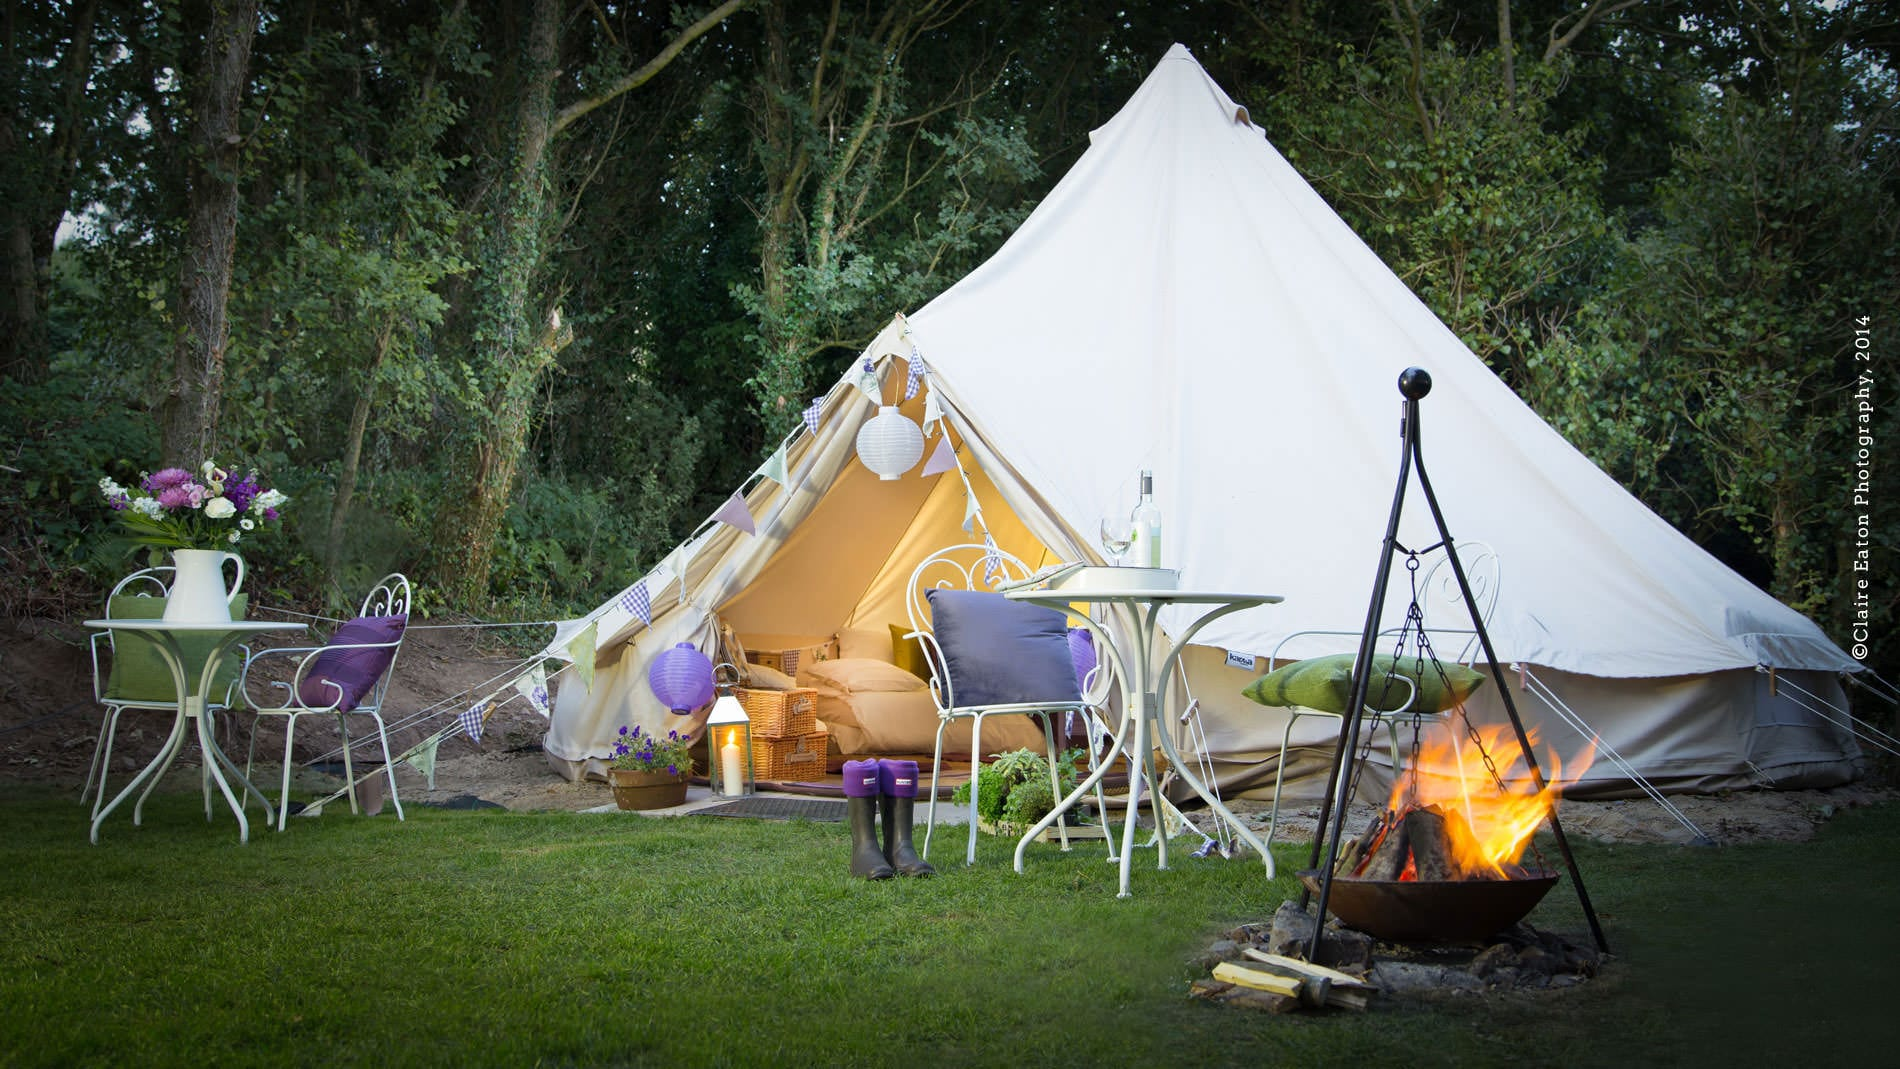 20% discount at Warren Farm Glamping this weekend.